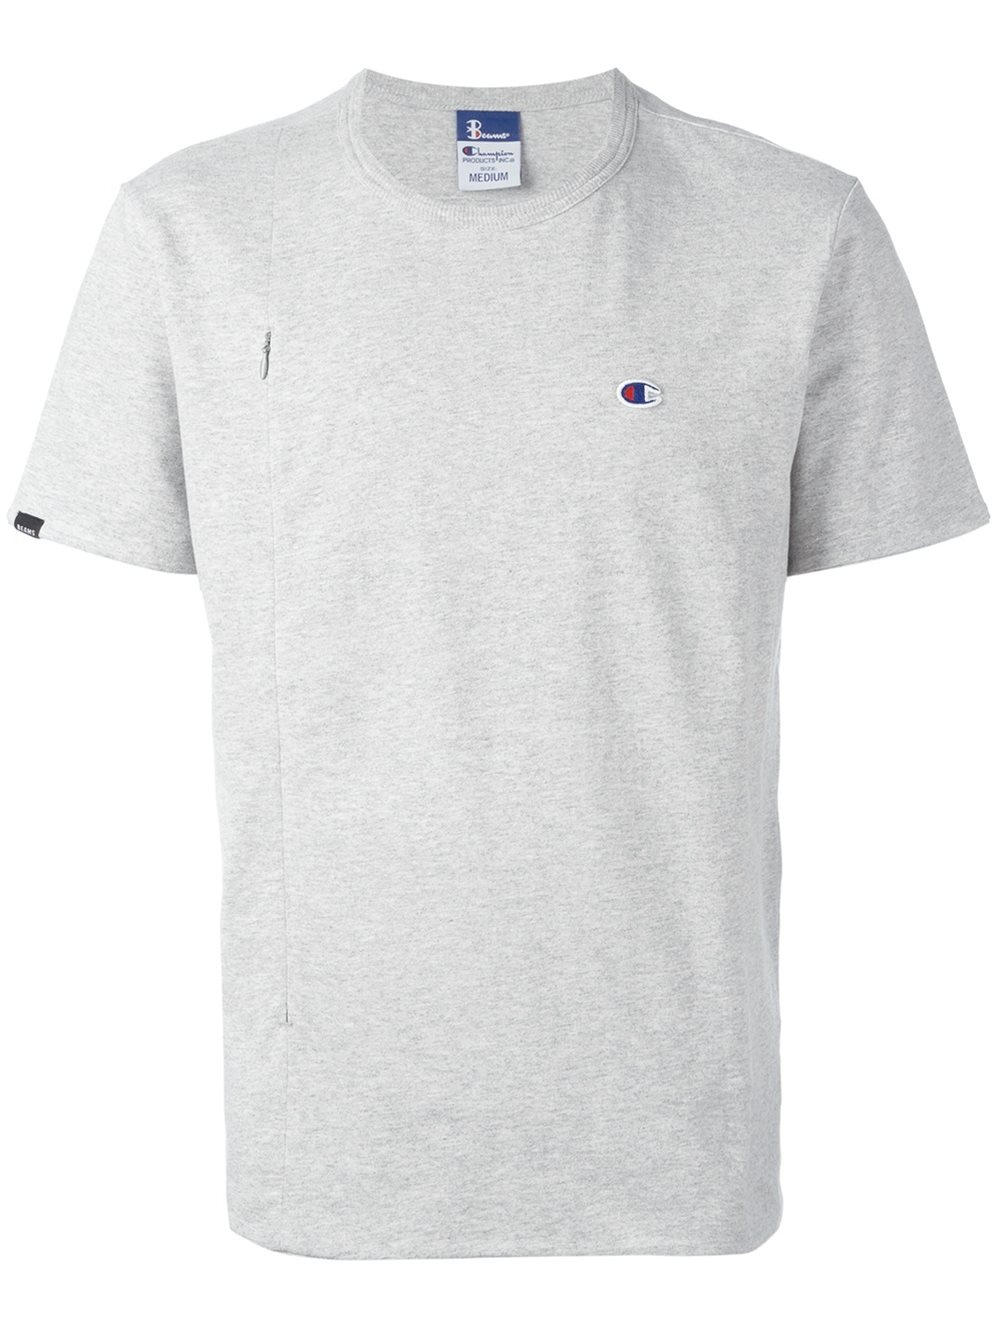 Champion X Beams T Shirt In Gray For Men Lyst